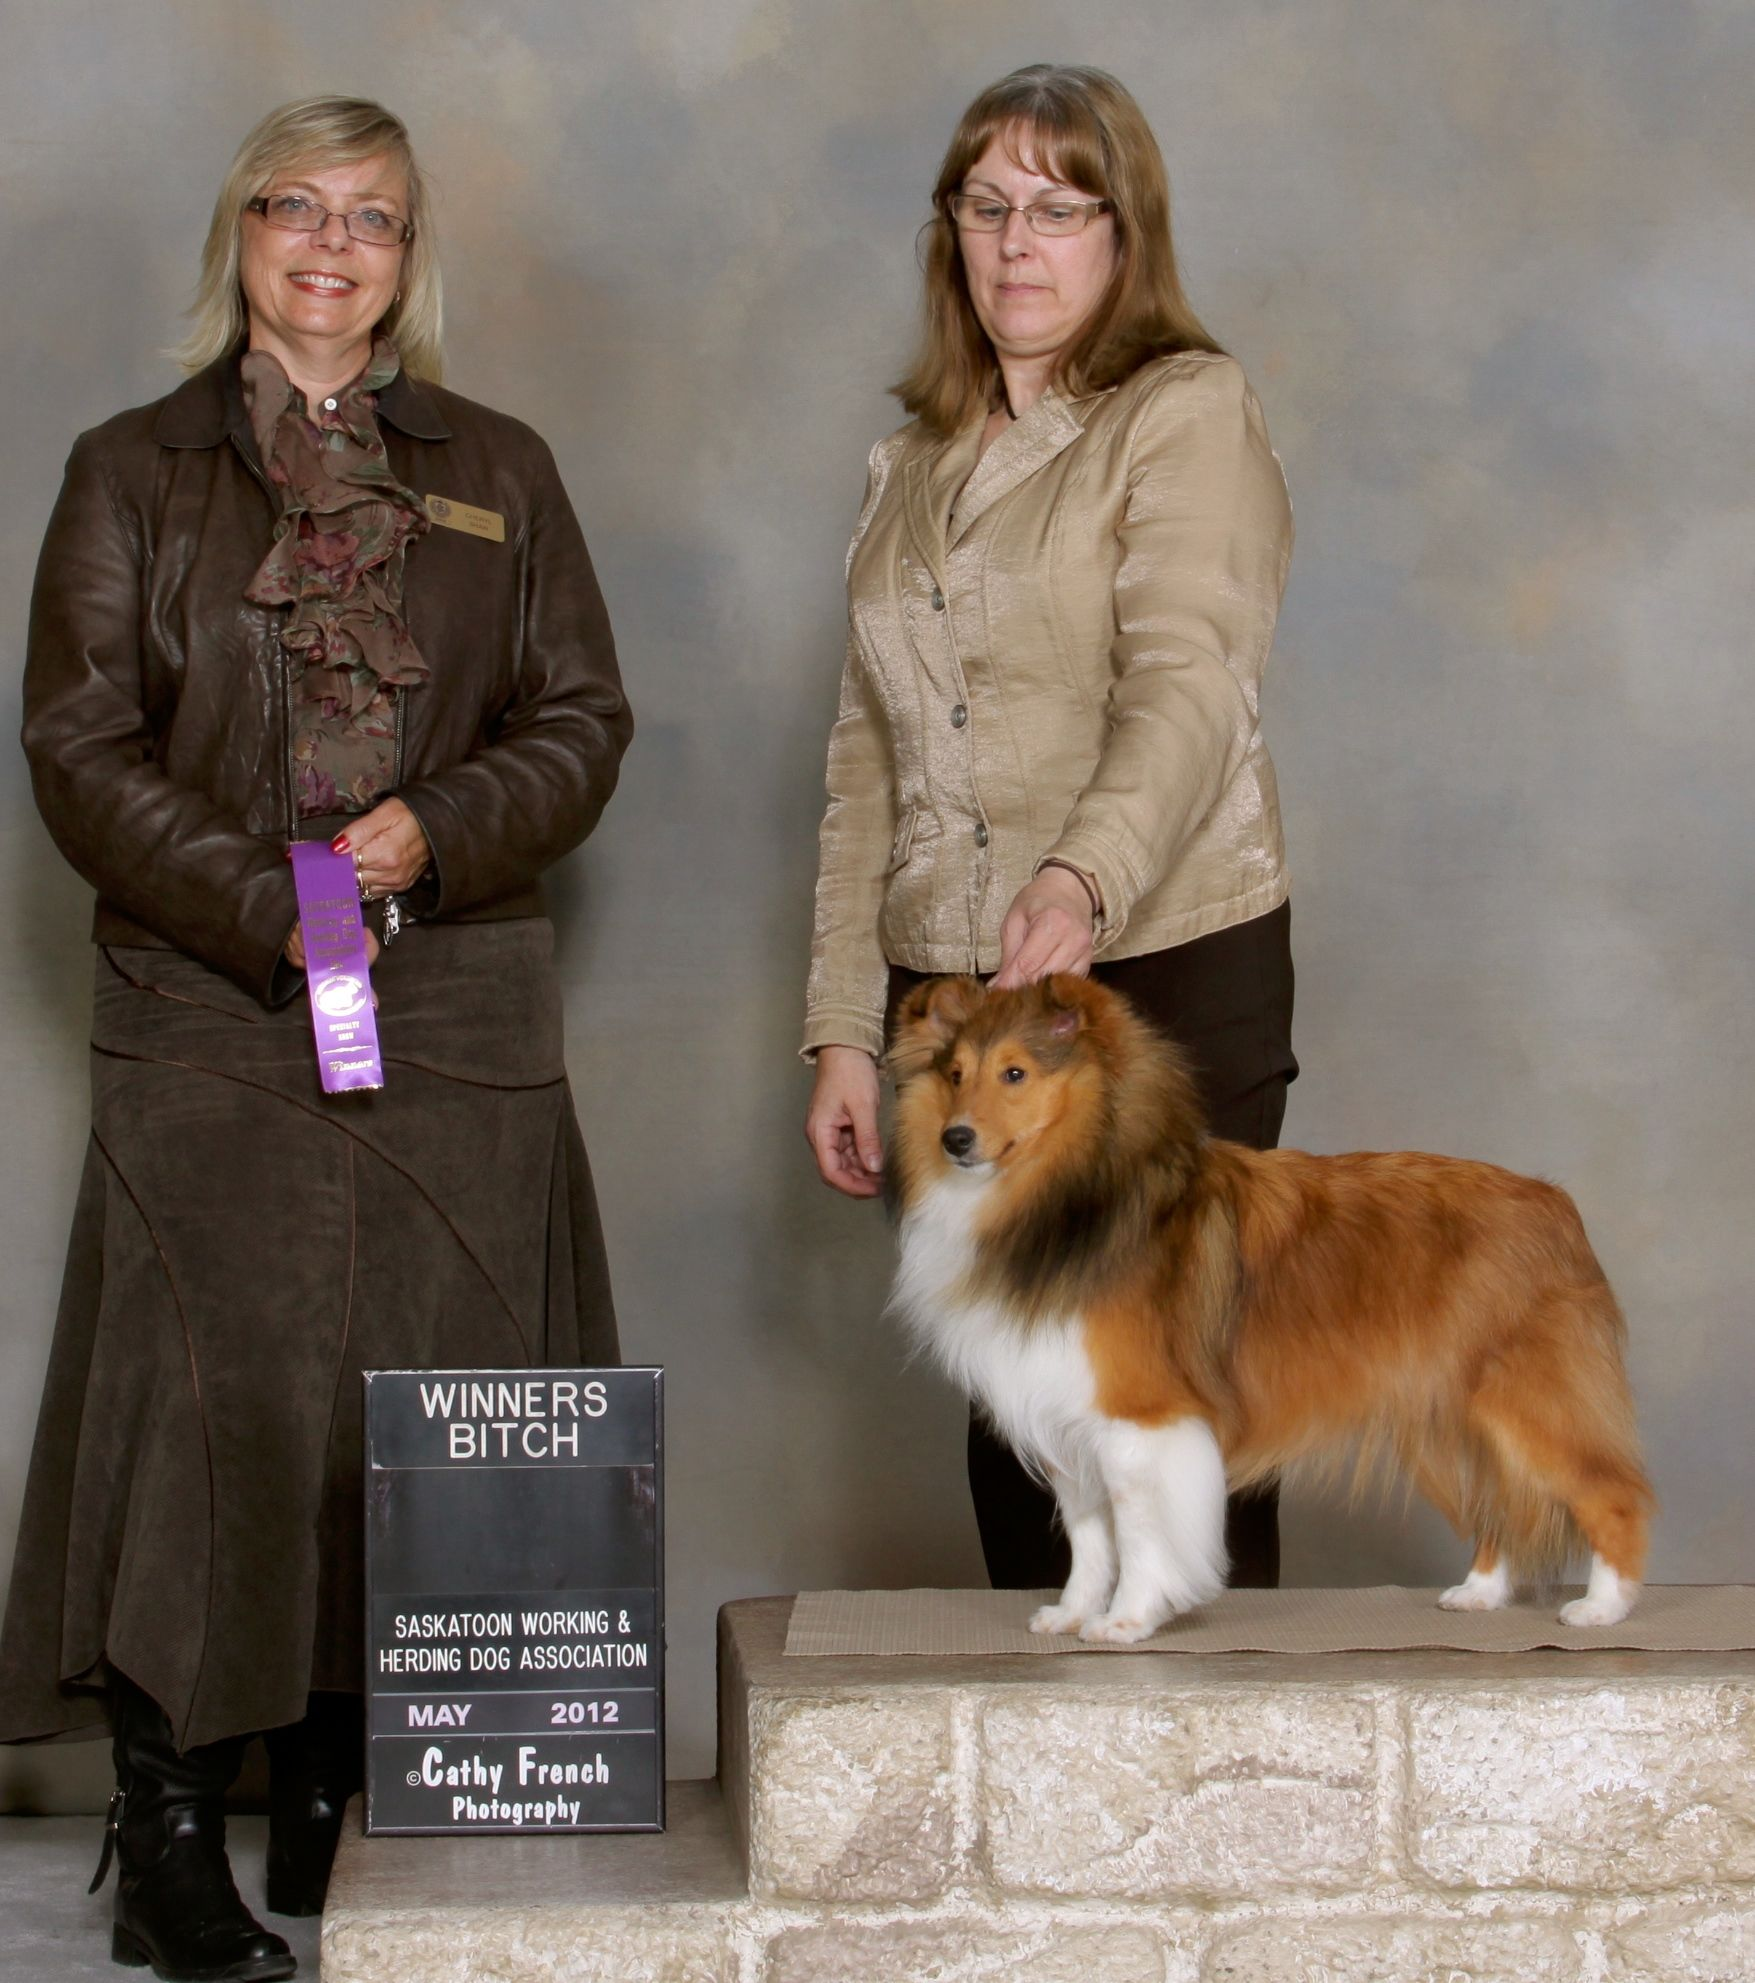 CanyonView Emi (With images) Shetland sheepdog, Sheepdog